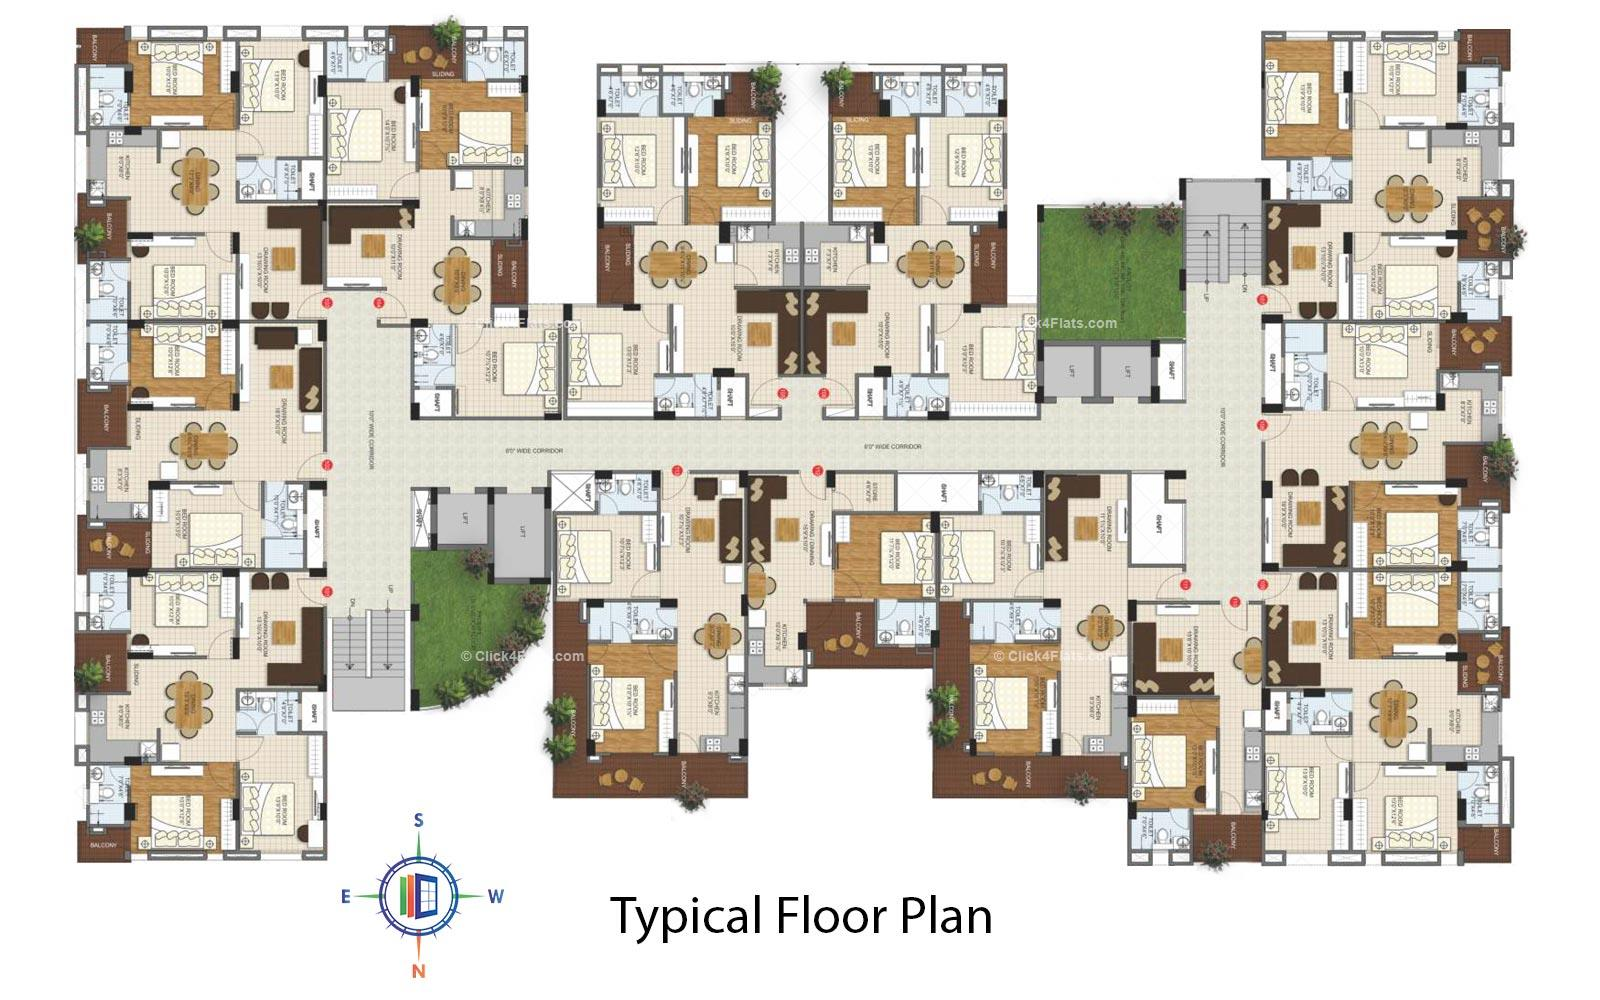 Kediaz Corporate Club Typical Floor Plan